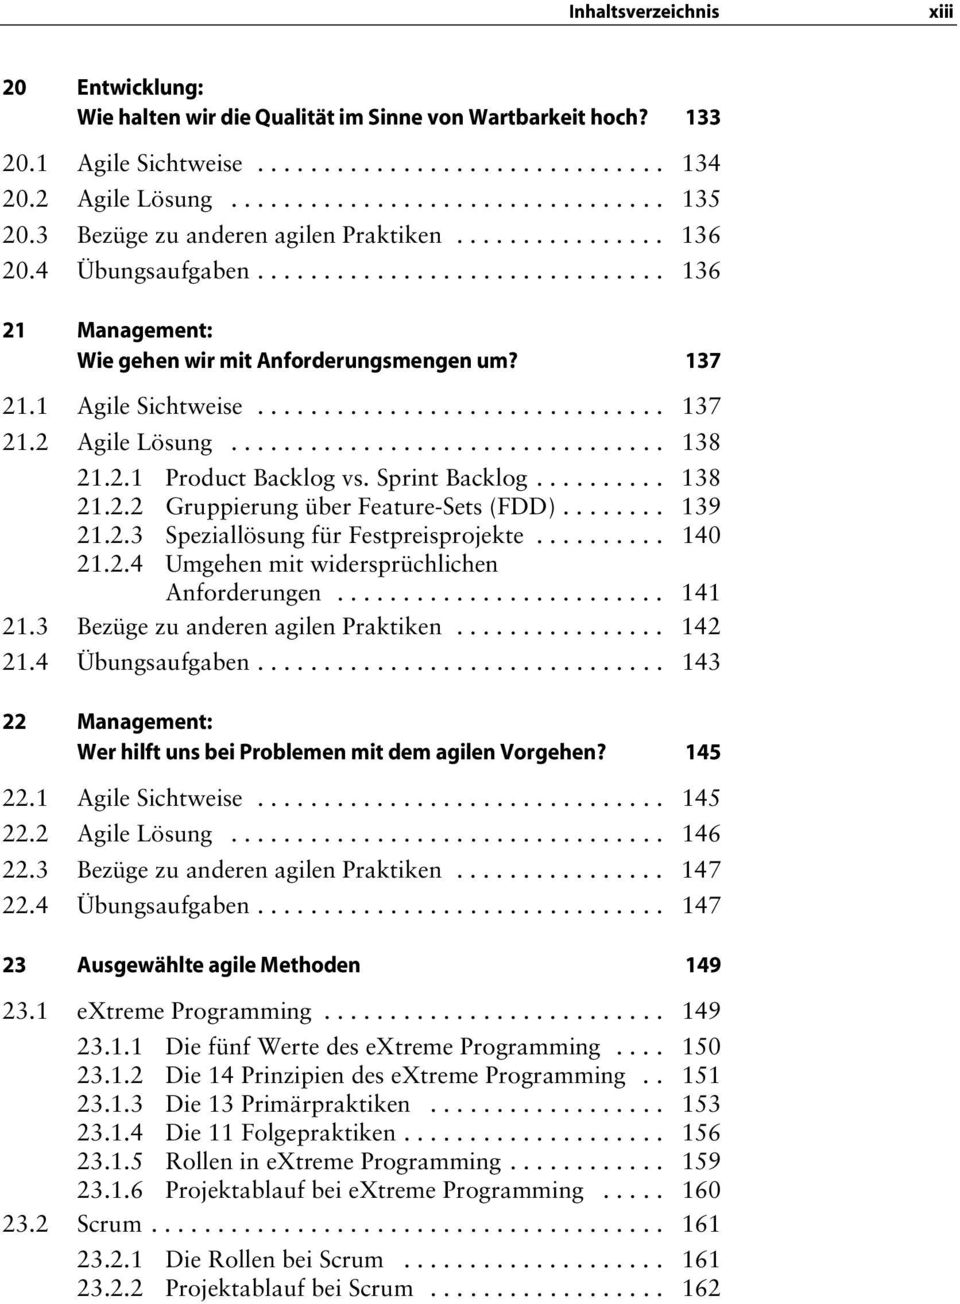 .............................. 137 21.2 Agile Lösung................................. 138 21.2.1 Product Backlog vs. Sprint Backlog.......... 138 21.2.2 Gruppierung über Feature-Sets (FDD)........ 139 21.